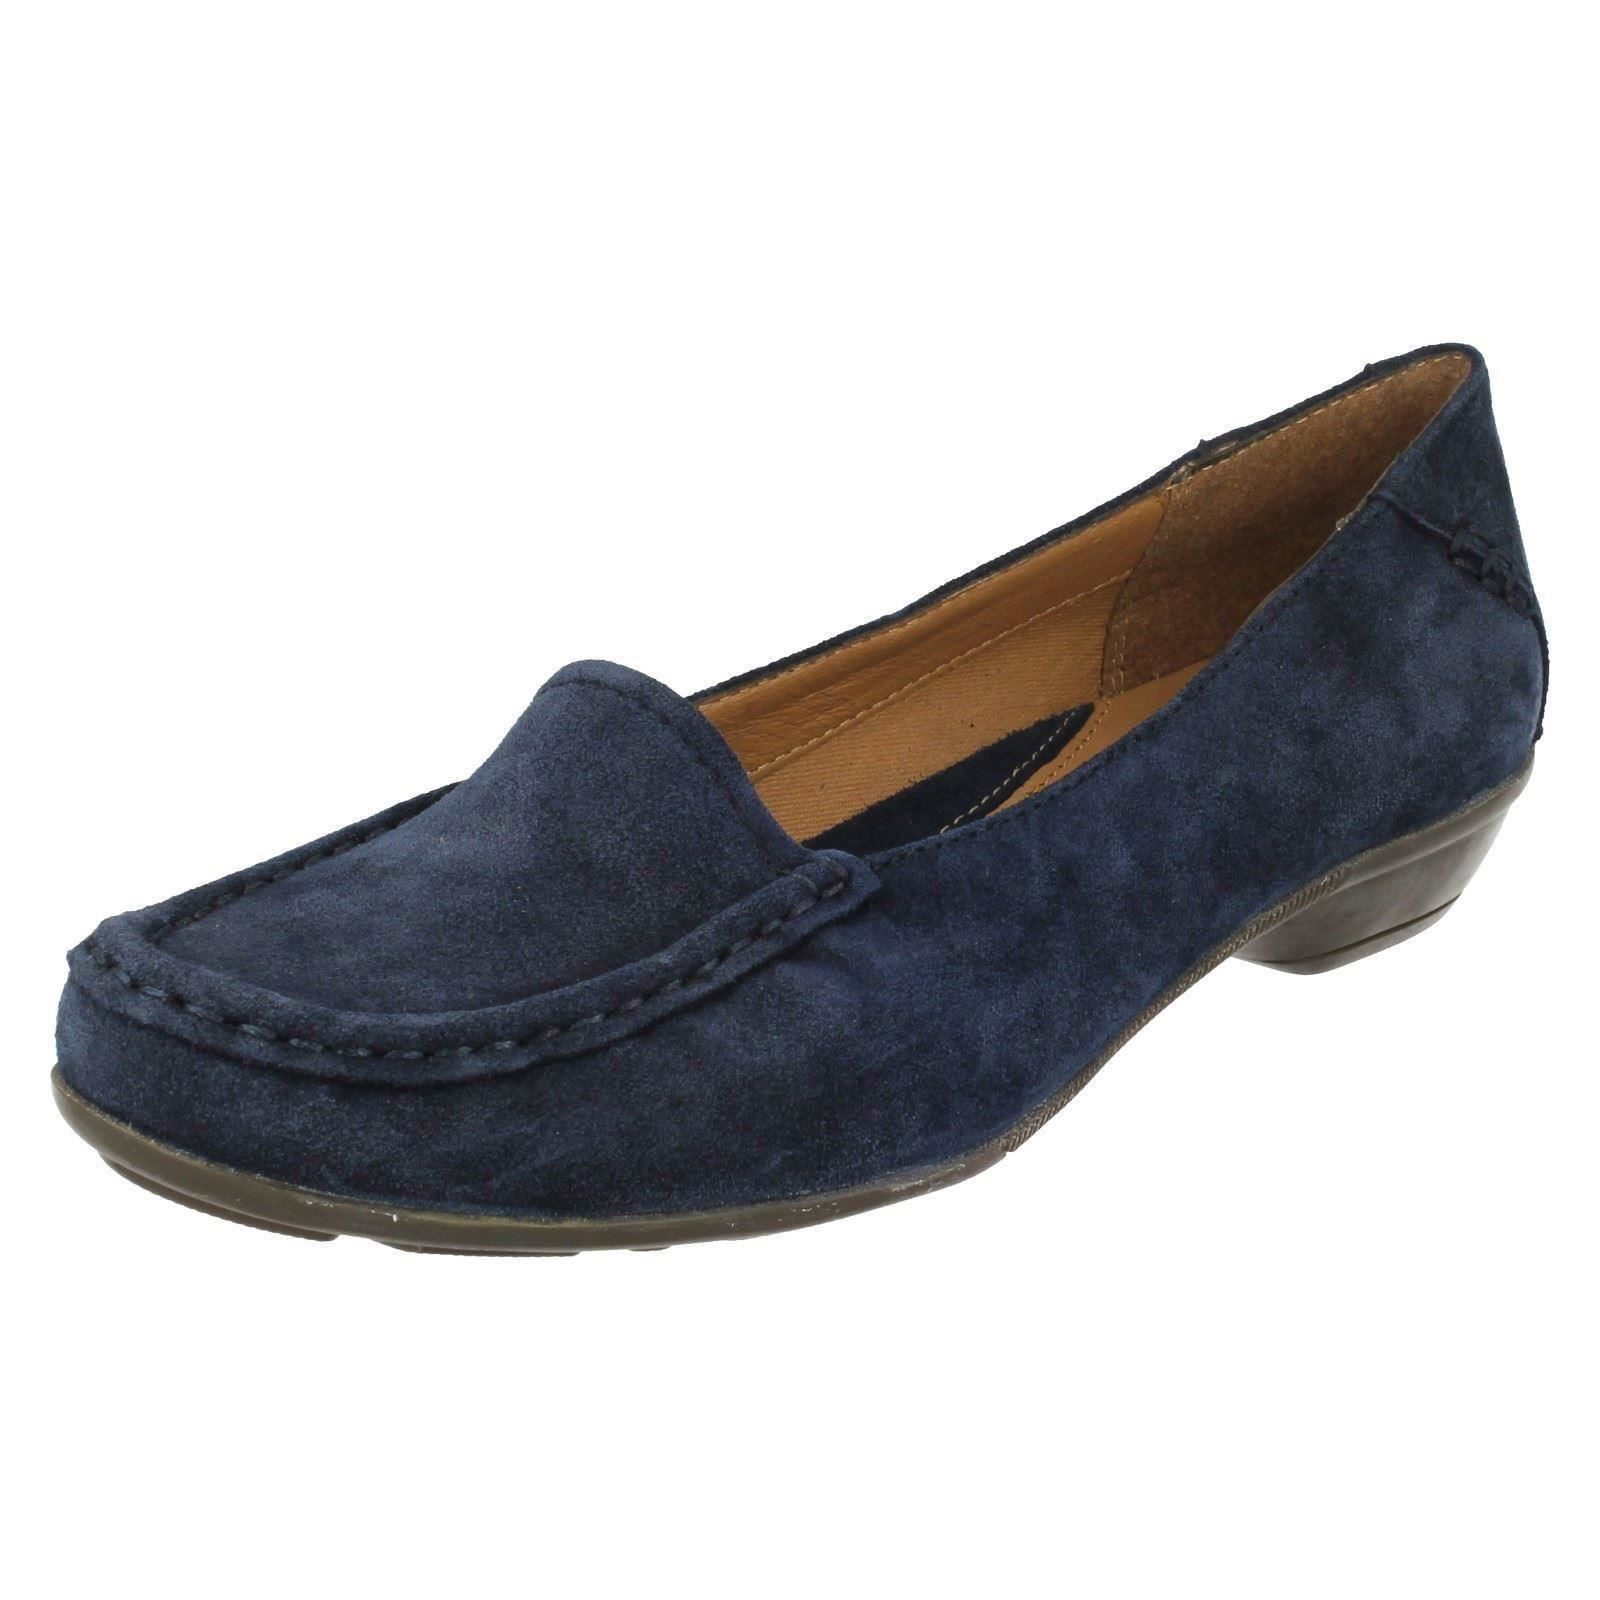 78a2574d696 Ladies Clarks Loafer Heeled Shoes Gilded Opal Navy UK 6 D. About this  product. Picture 1 of 8  Picture 2 of 8 ...